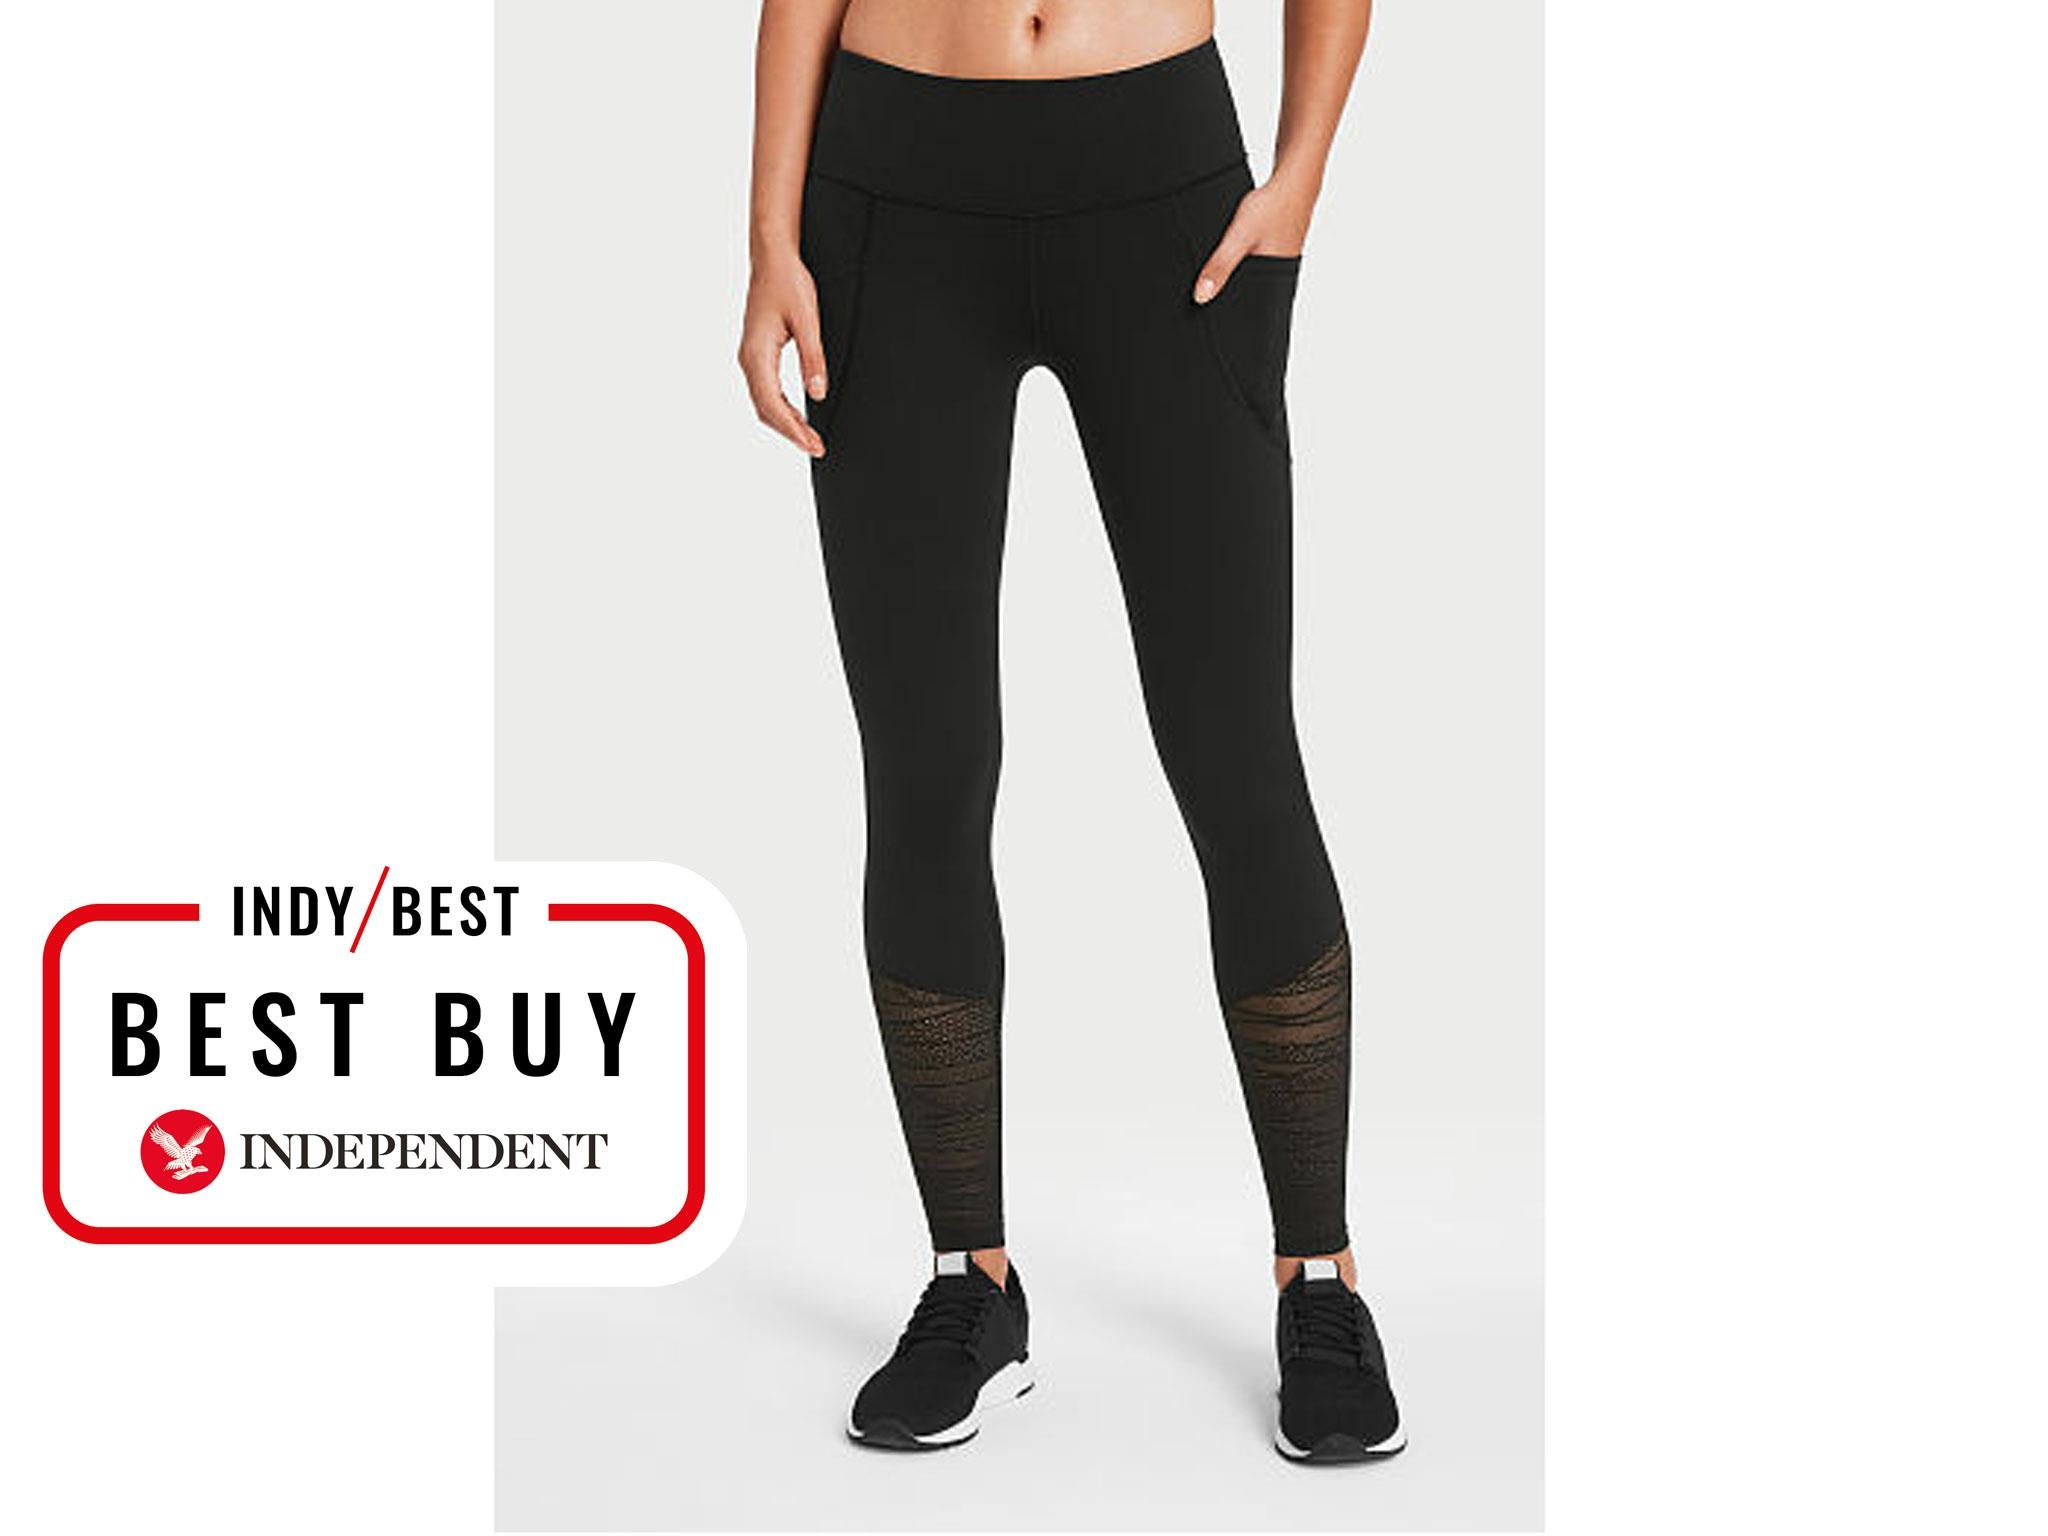 44d9292ac2dba Victoria's Secret Knockout Leggings: £68.43, Victoria's Secret. These gym  ...